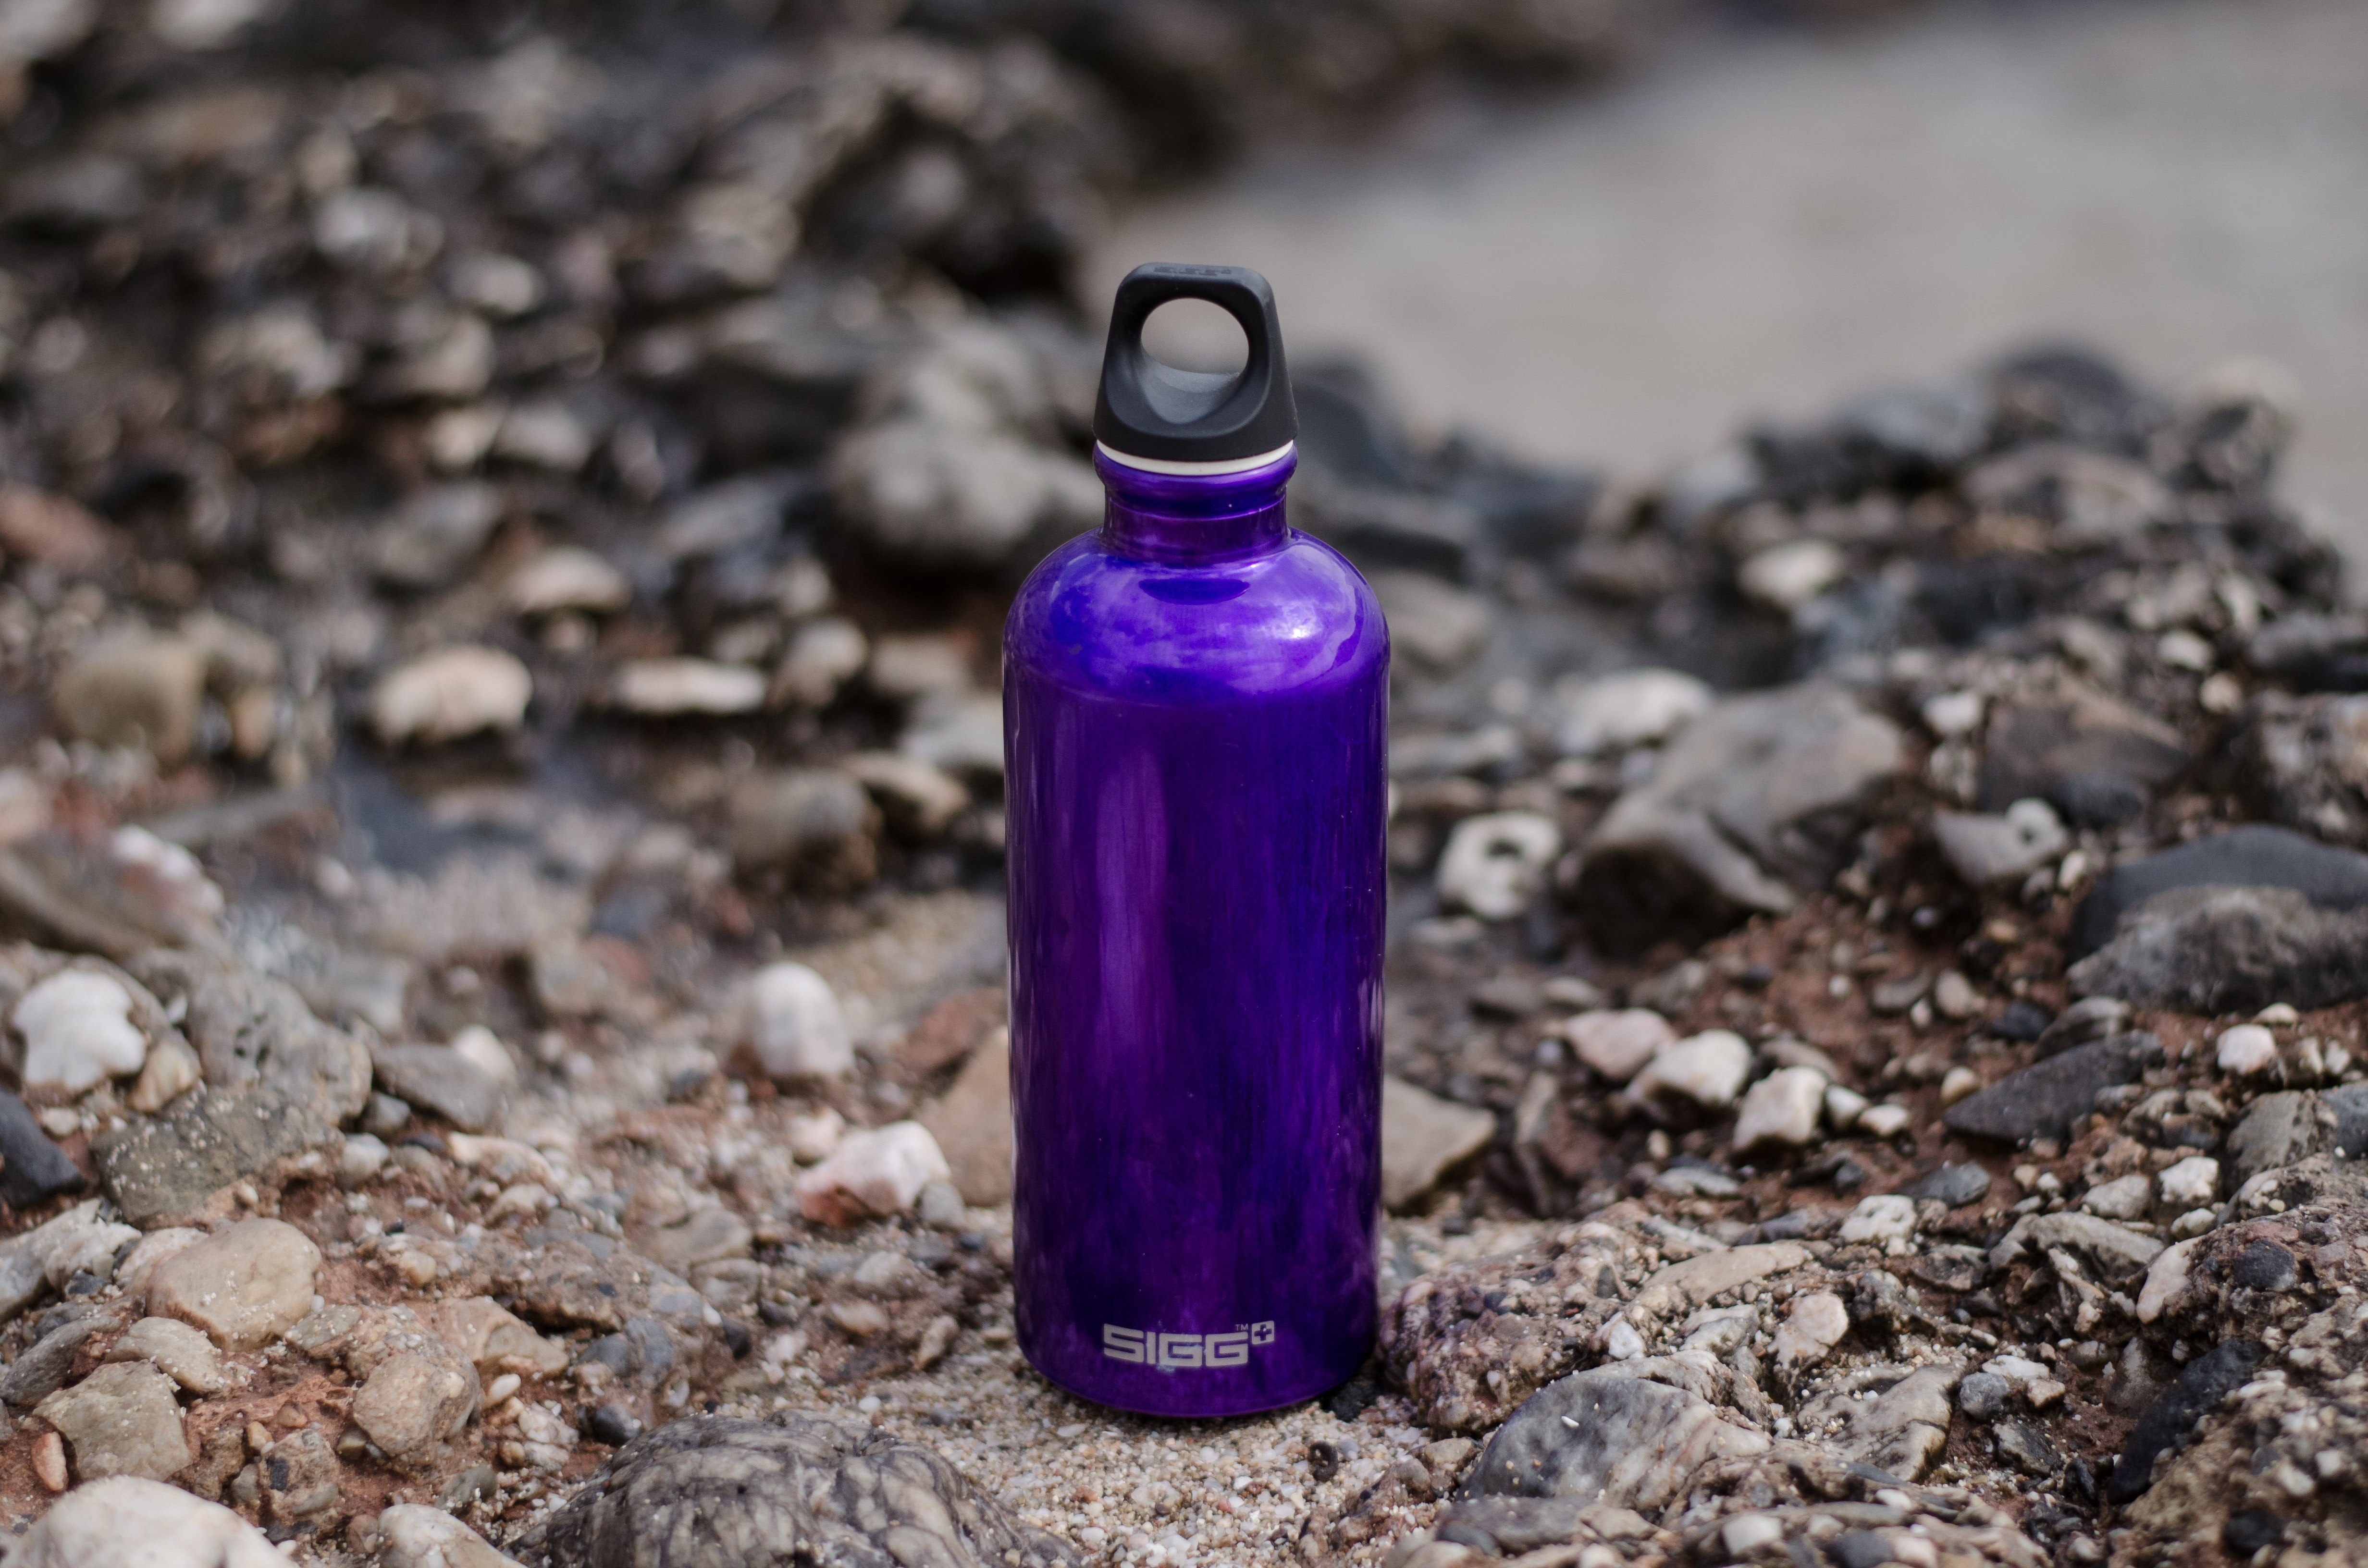 Reusable bottles are an easy way to reduce your plastic usage